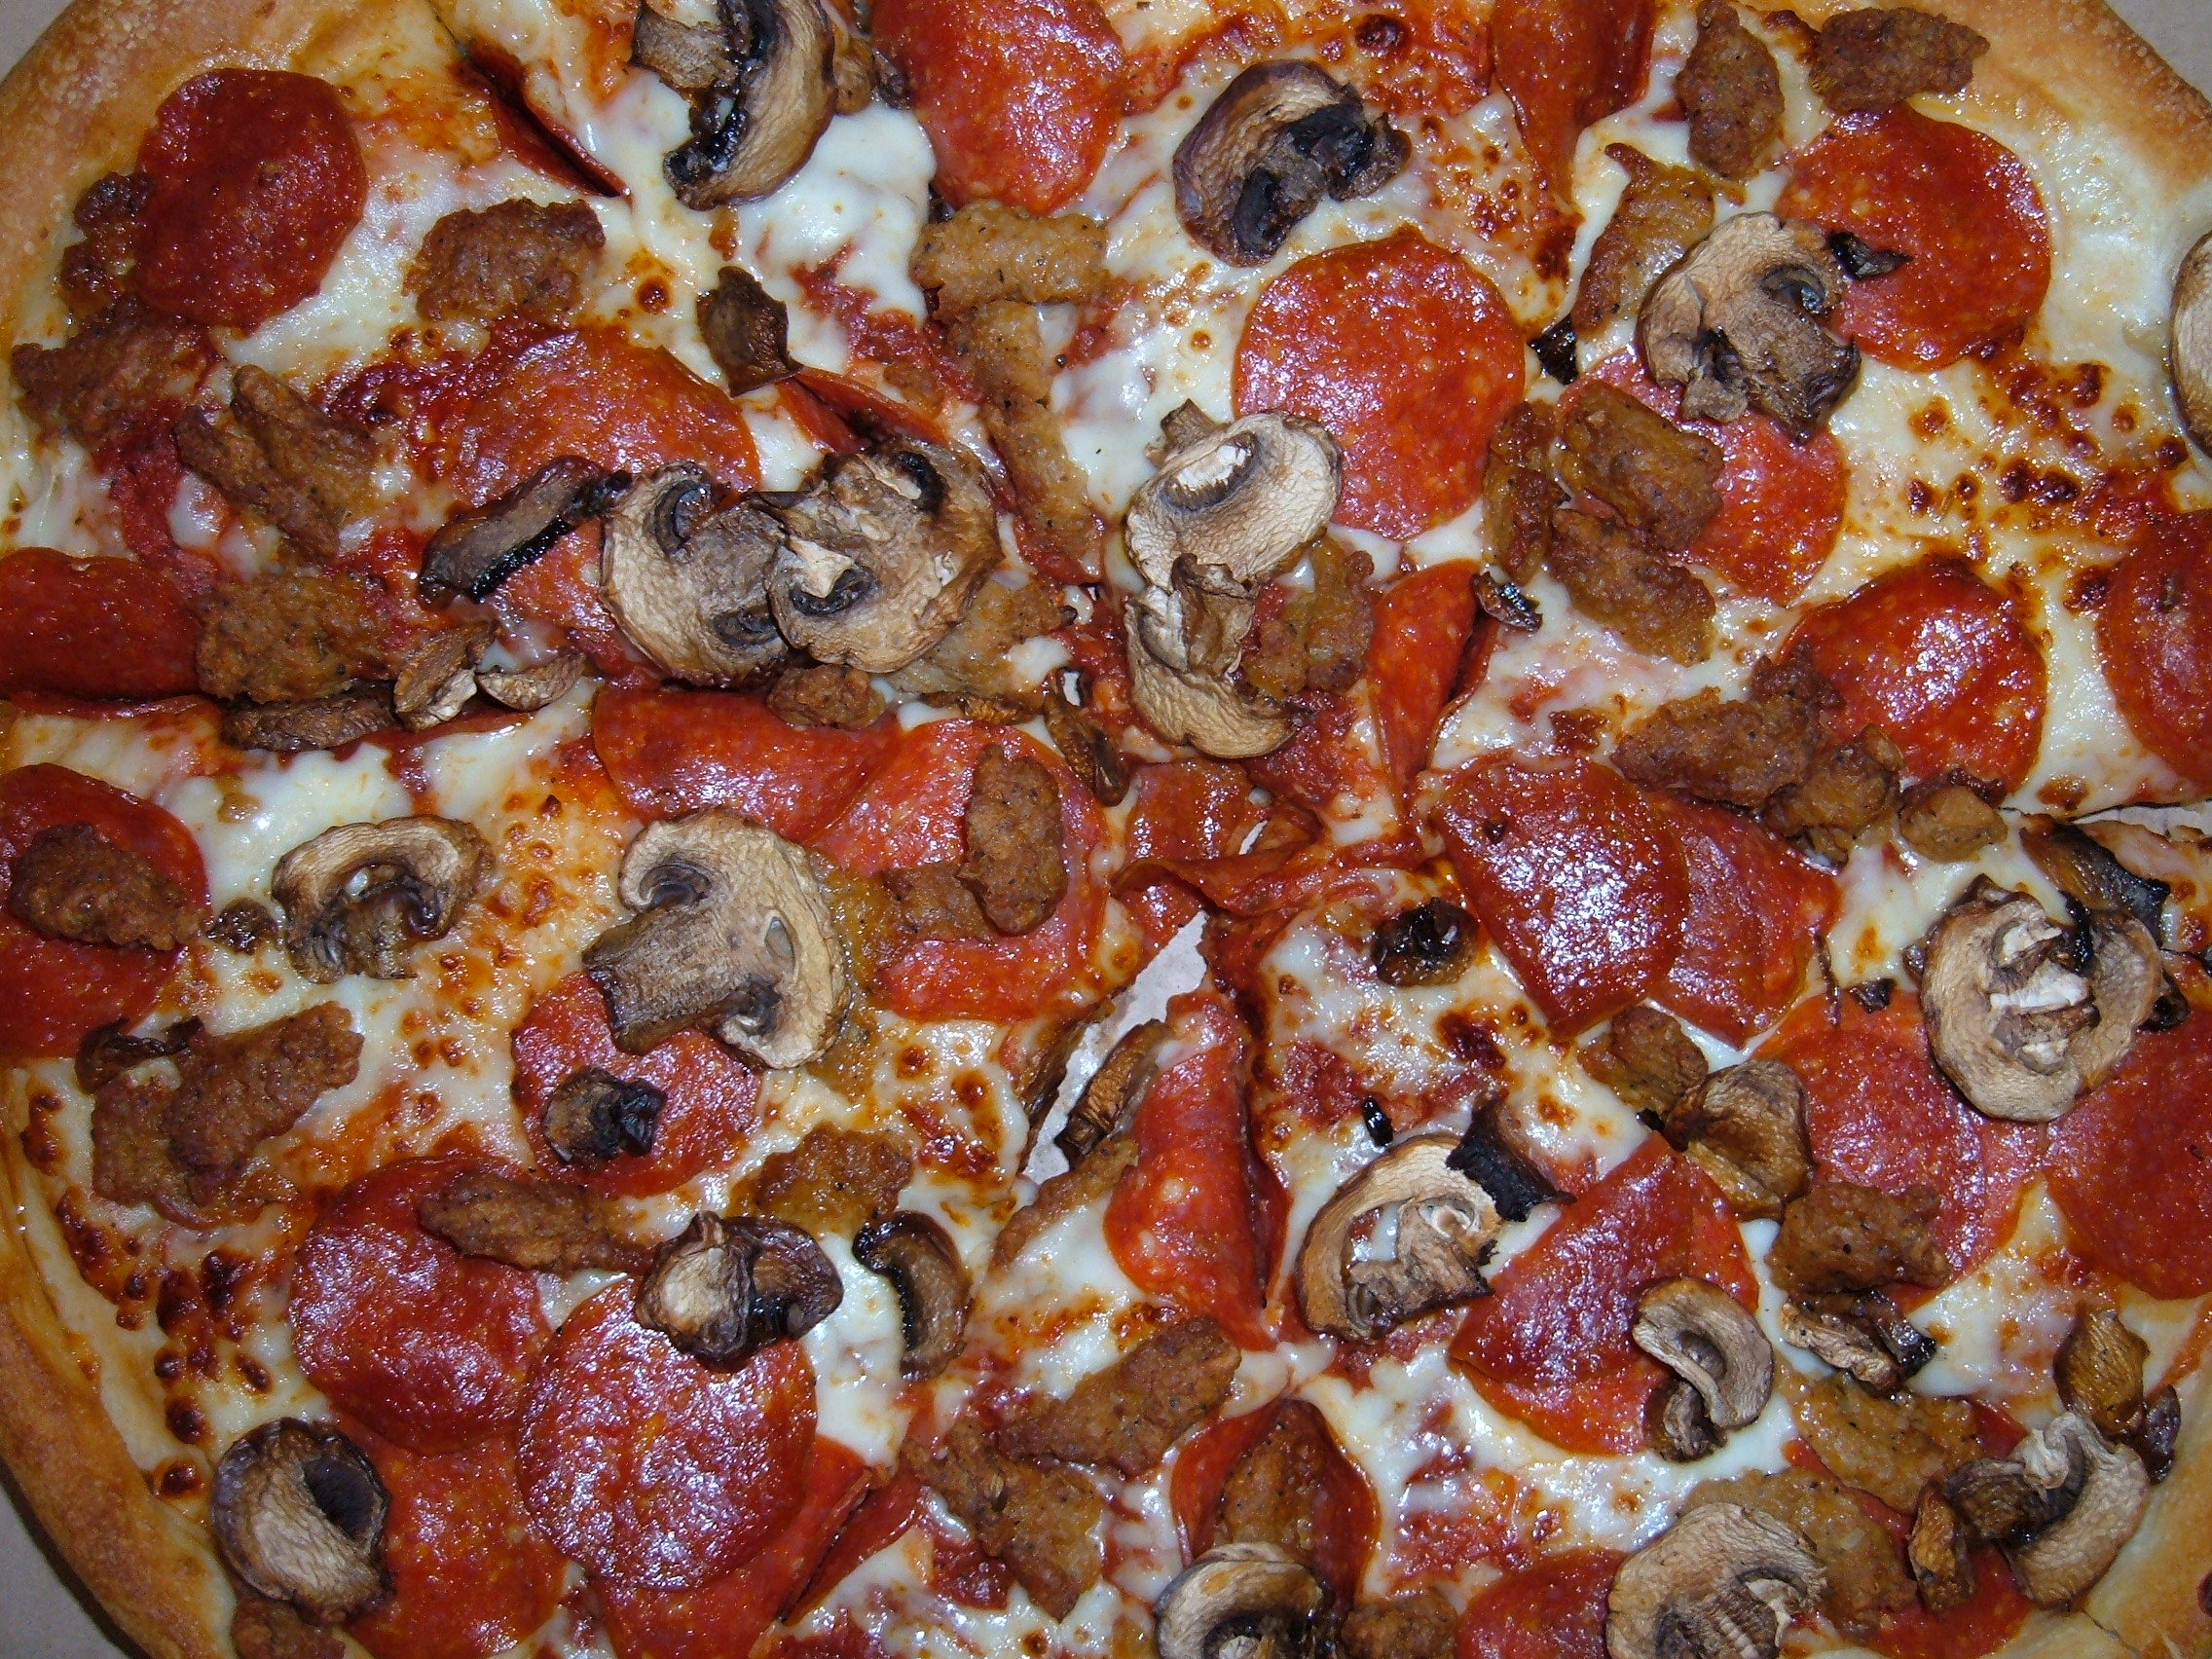 Take a look at our 3 Pizza Hut discount codes including 1 coupon code, and 2 sales. Most popular now: Any Large Pizza for $ Latest offer: Any Large Pizza for $